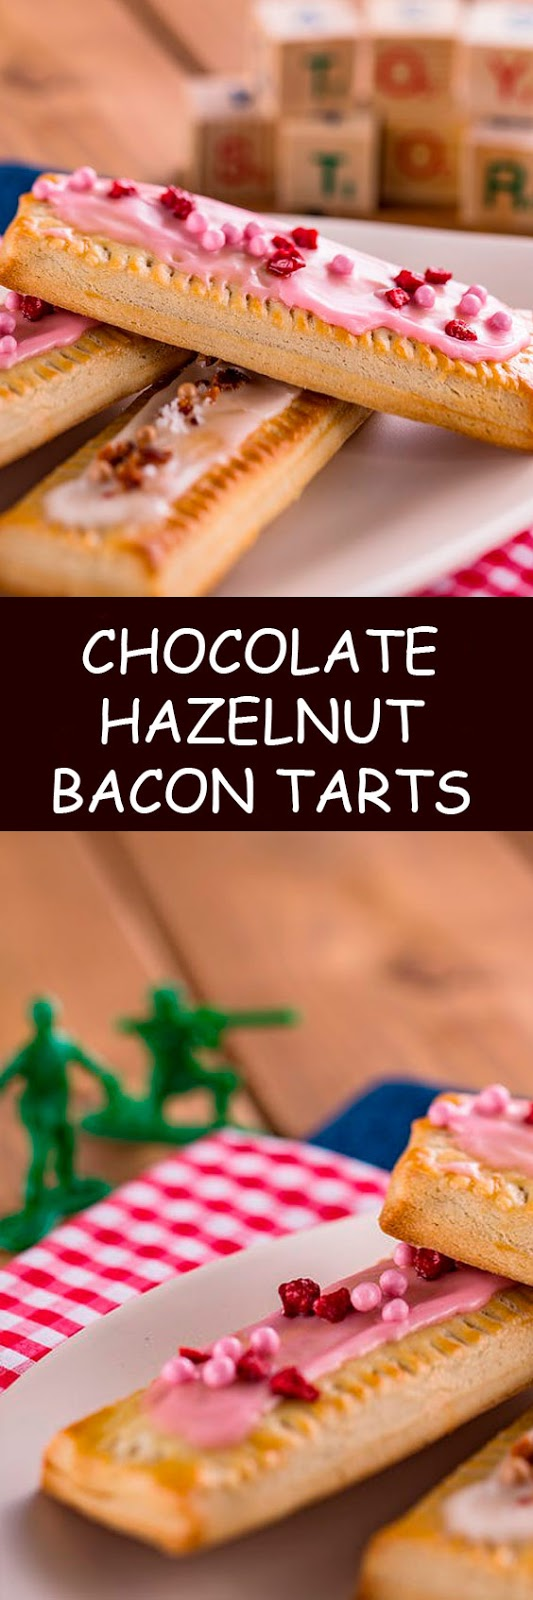 Chocolate-Hazelnut Bacon Tarts